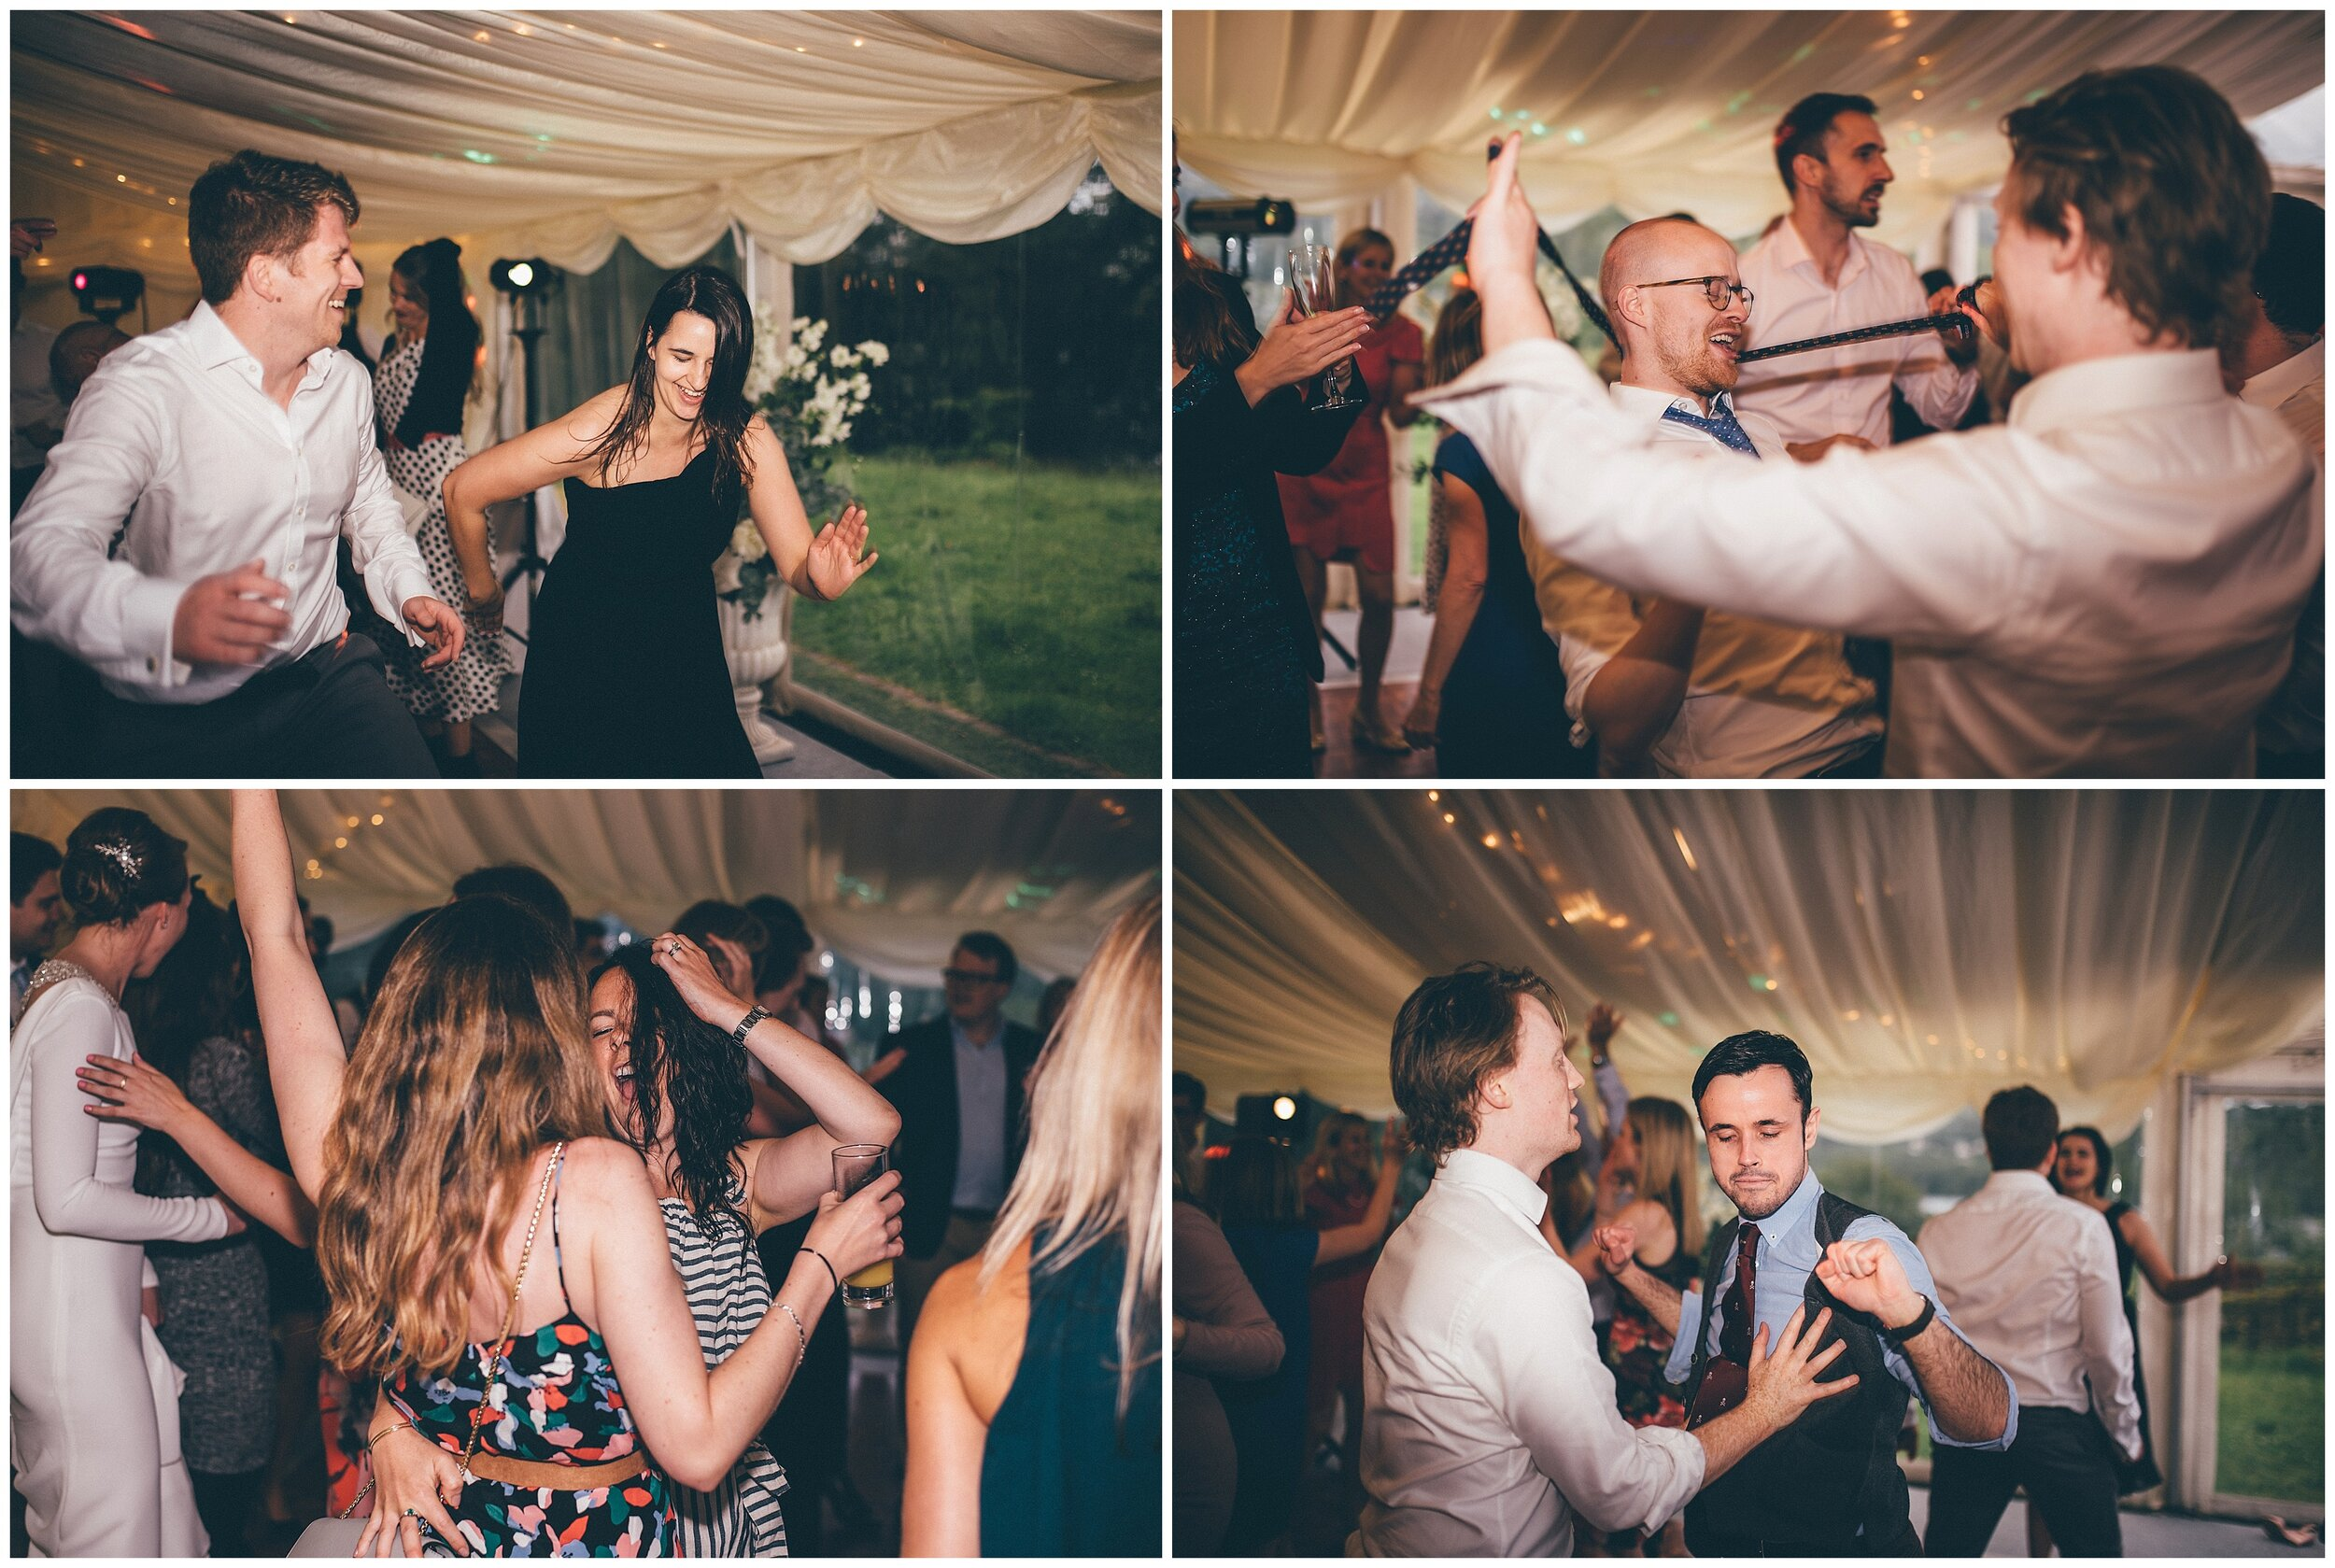 First Dance at Silverholme manor, Graythwaite Estate wedding in the Lake District.